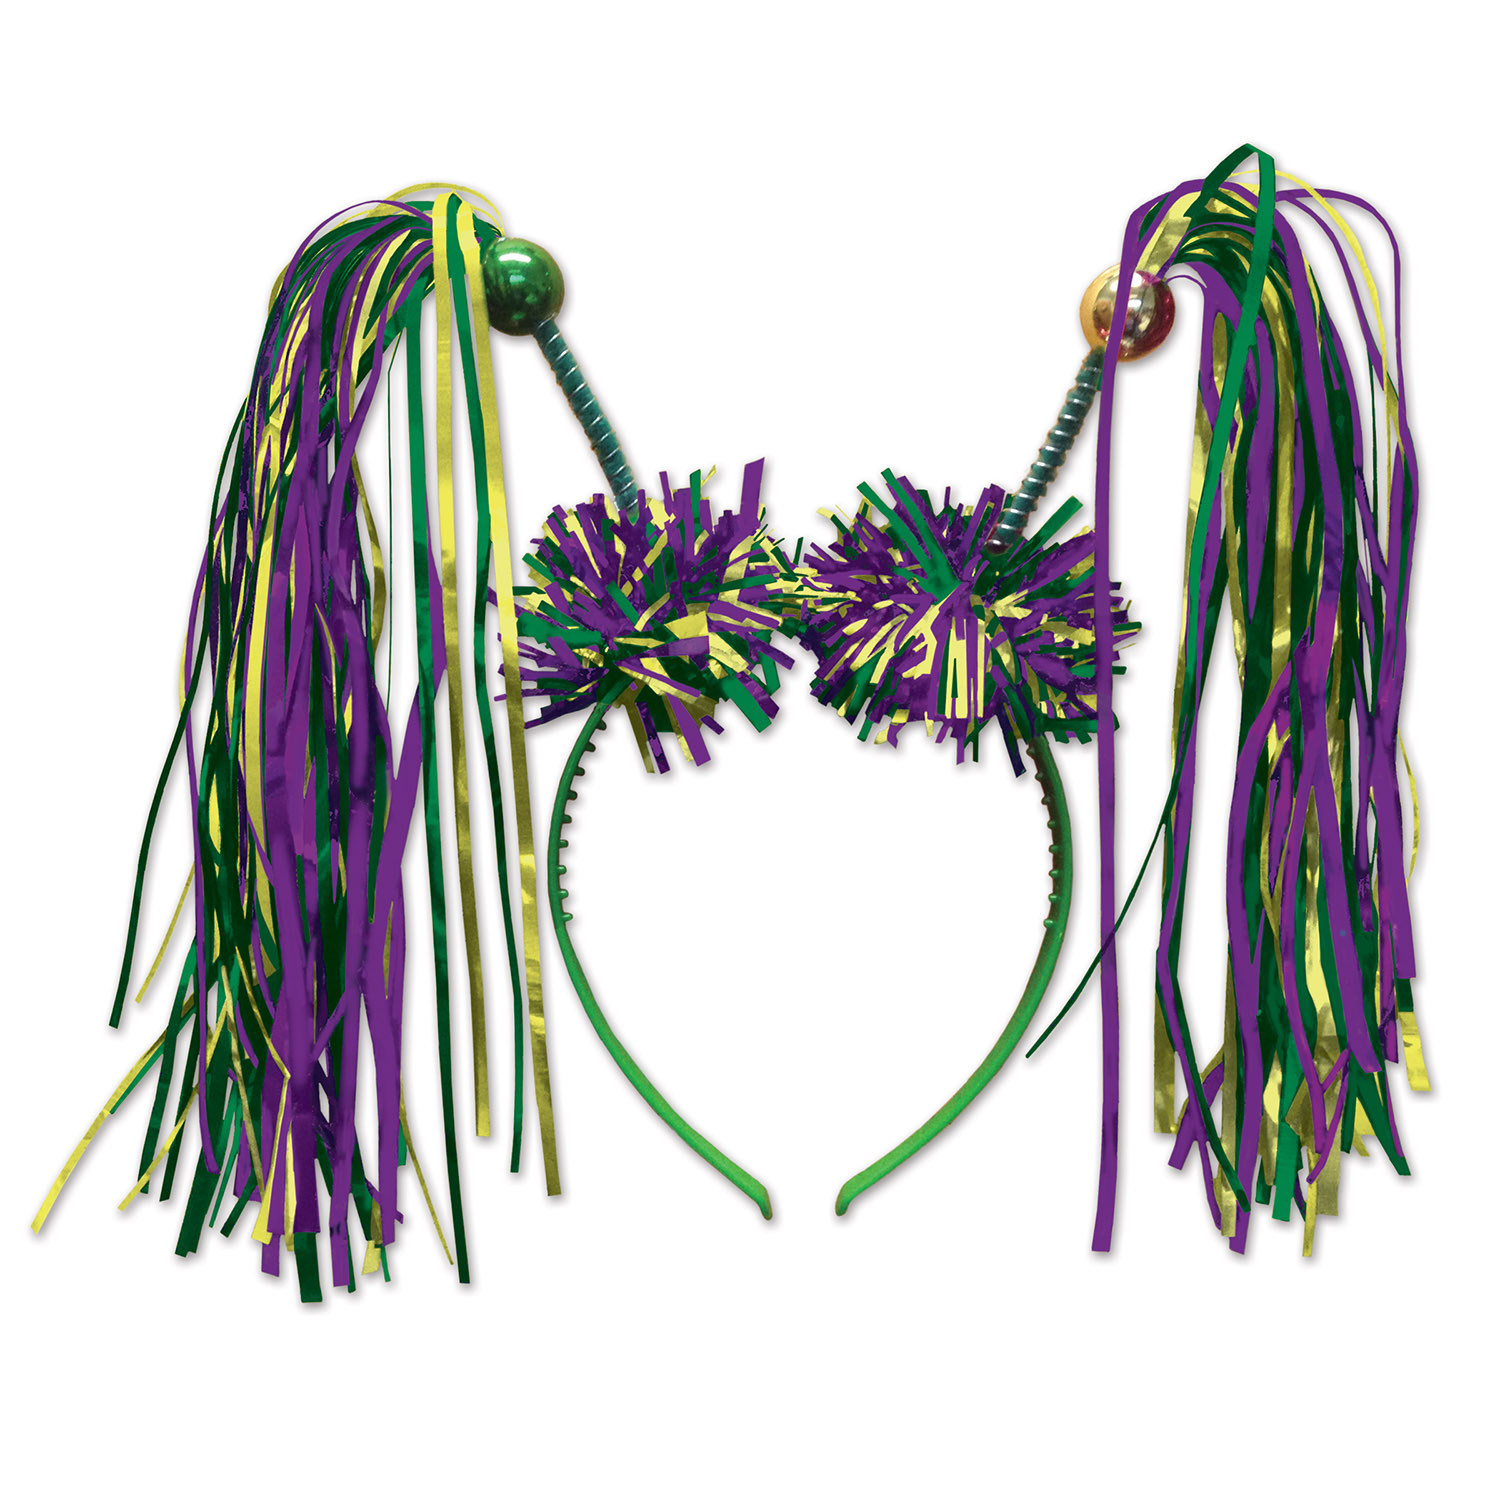 Firework Boppers (Pack of 12) Firework Boppers, party favors, decoration, mardi gras, wholesale, inexpensive, bulk